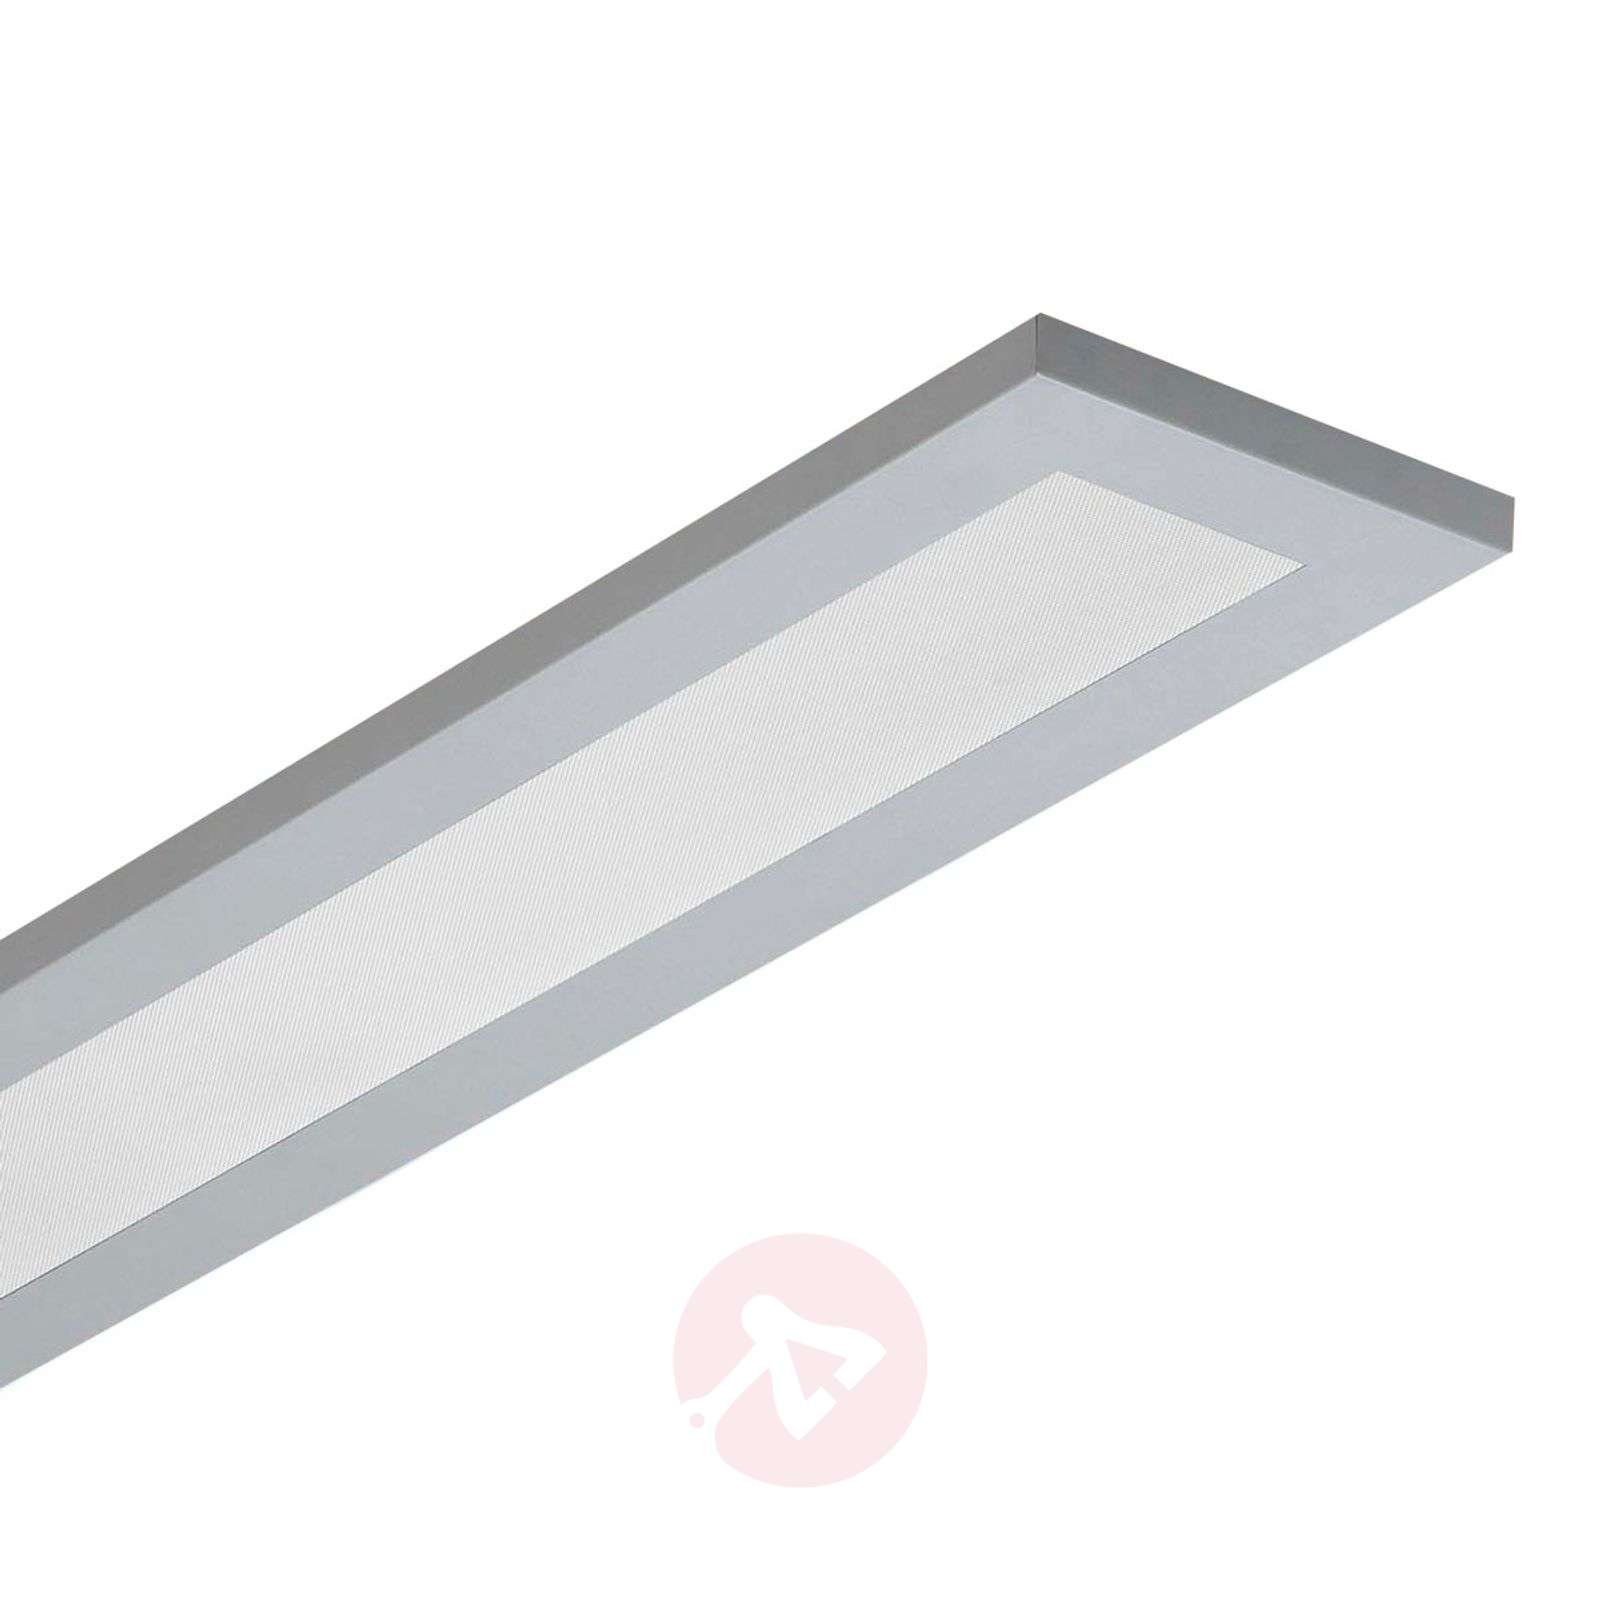 LED hanglamp LAS direct/indirect licht-6067027X-01